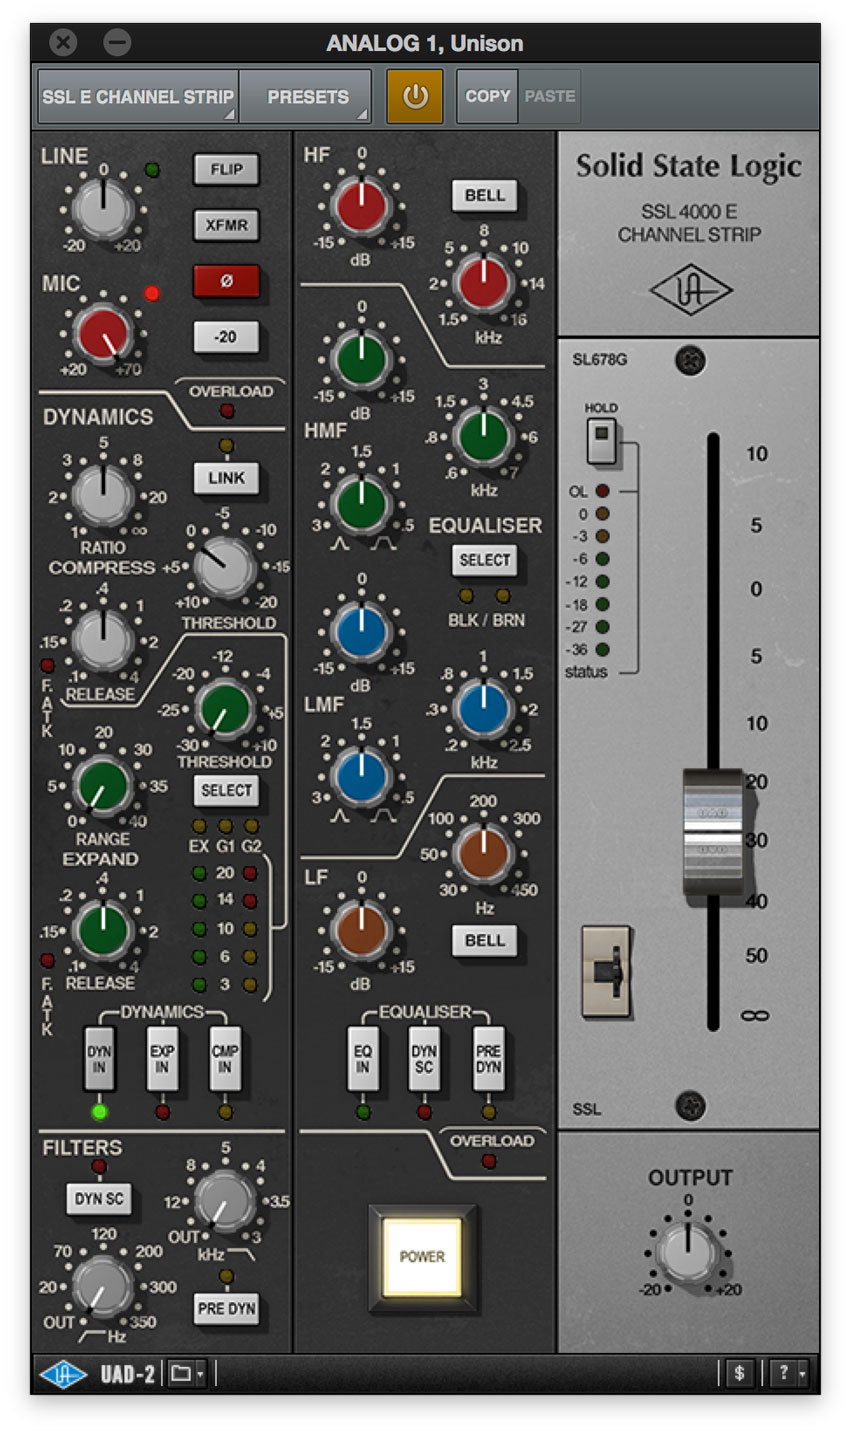 SSL 4000 E Channel Strip